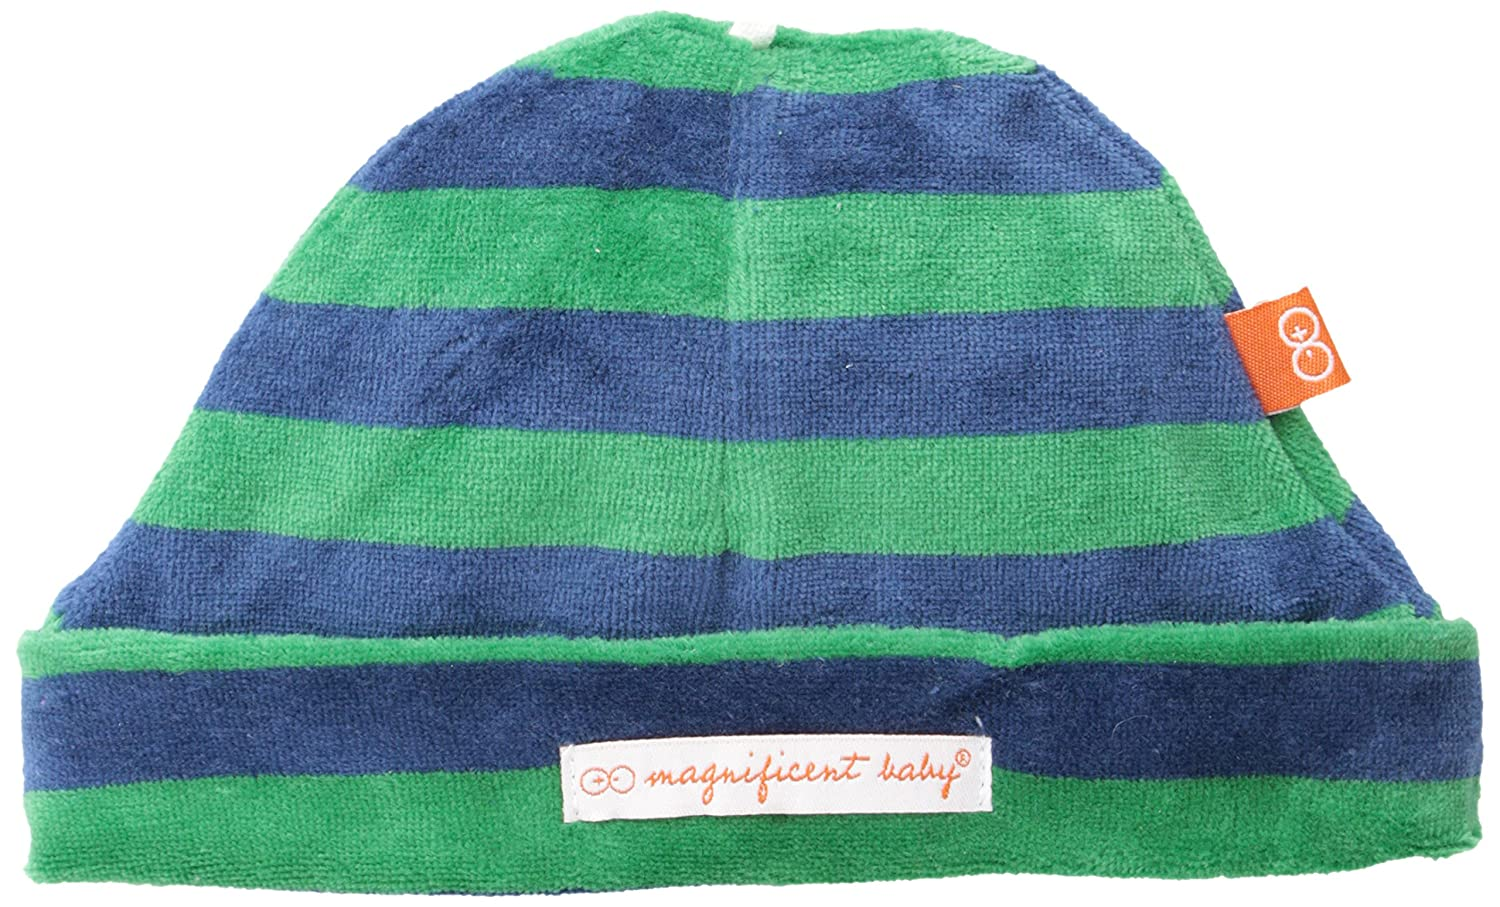 Magnificent Baby Baby-Girls Infant Velour Hat, Green/Navy, 3 Months 8034-B